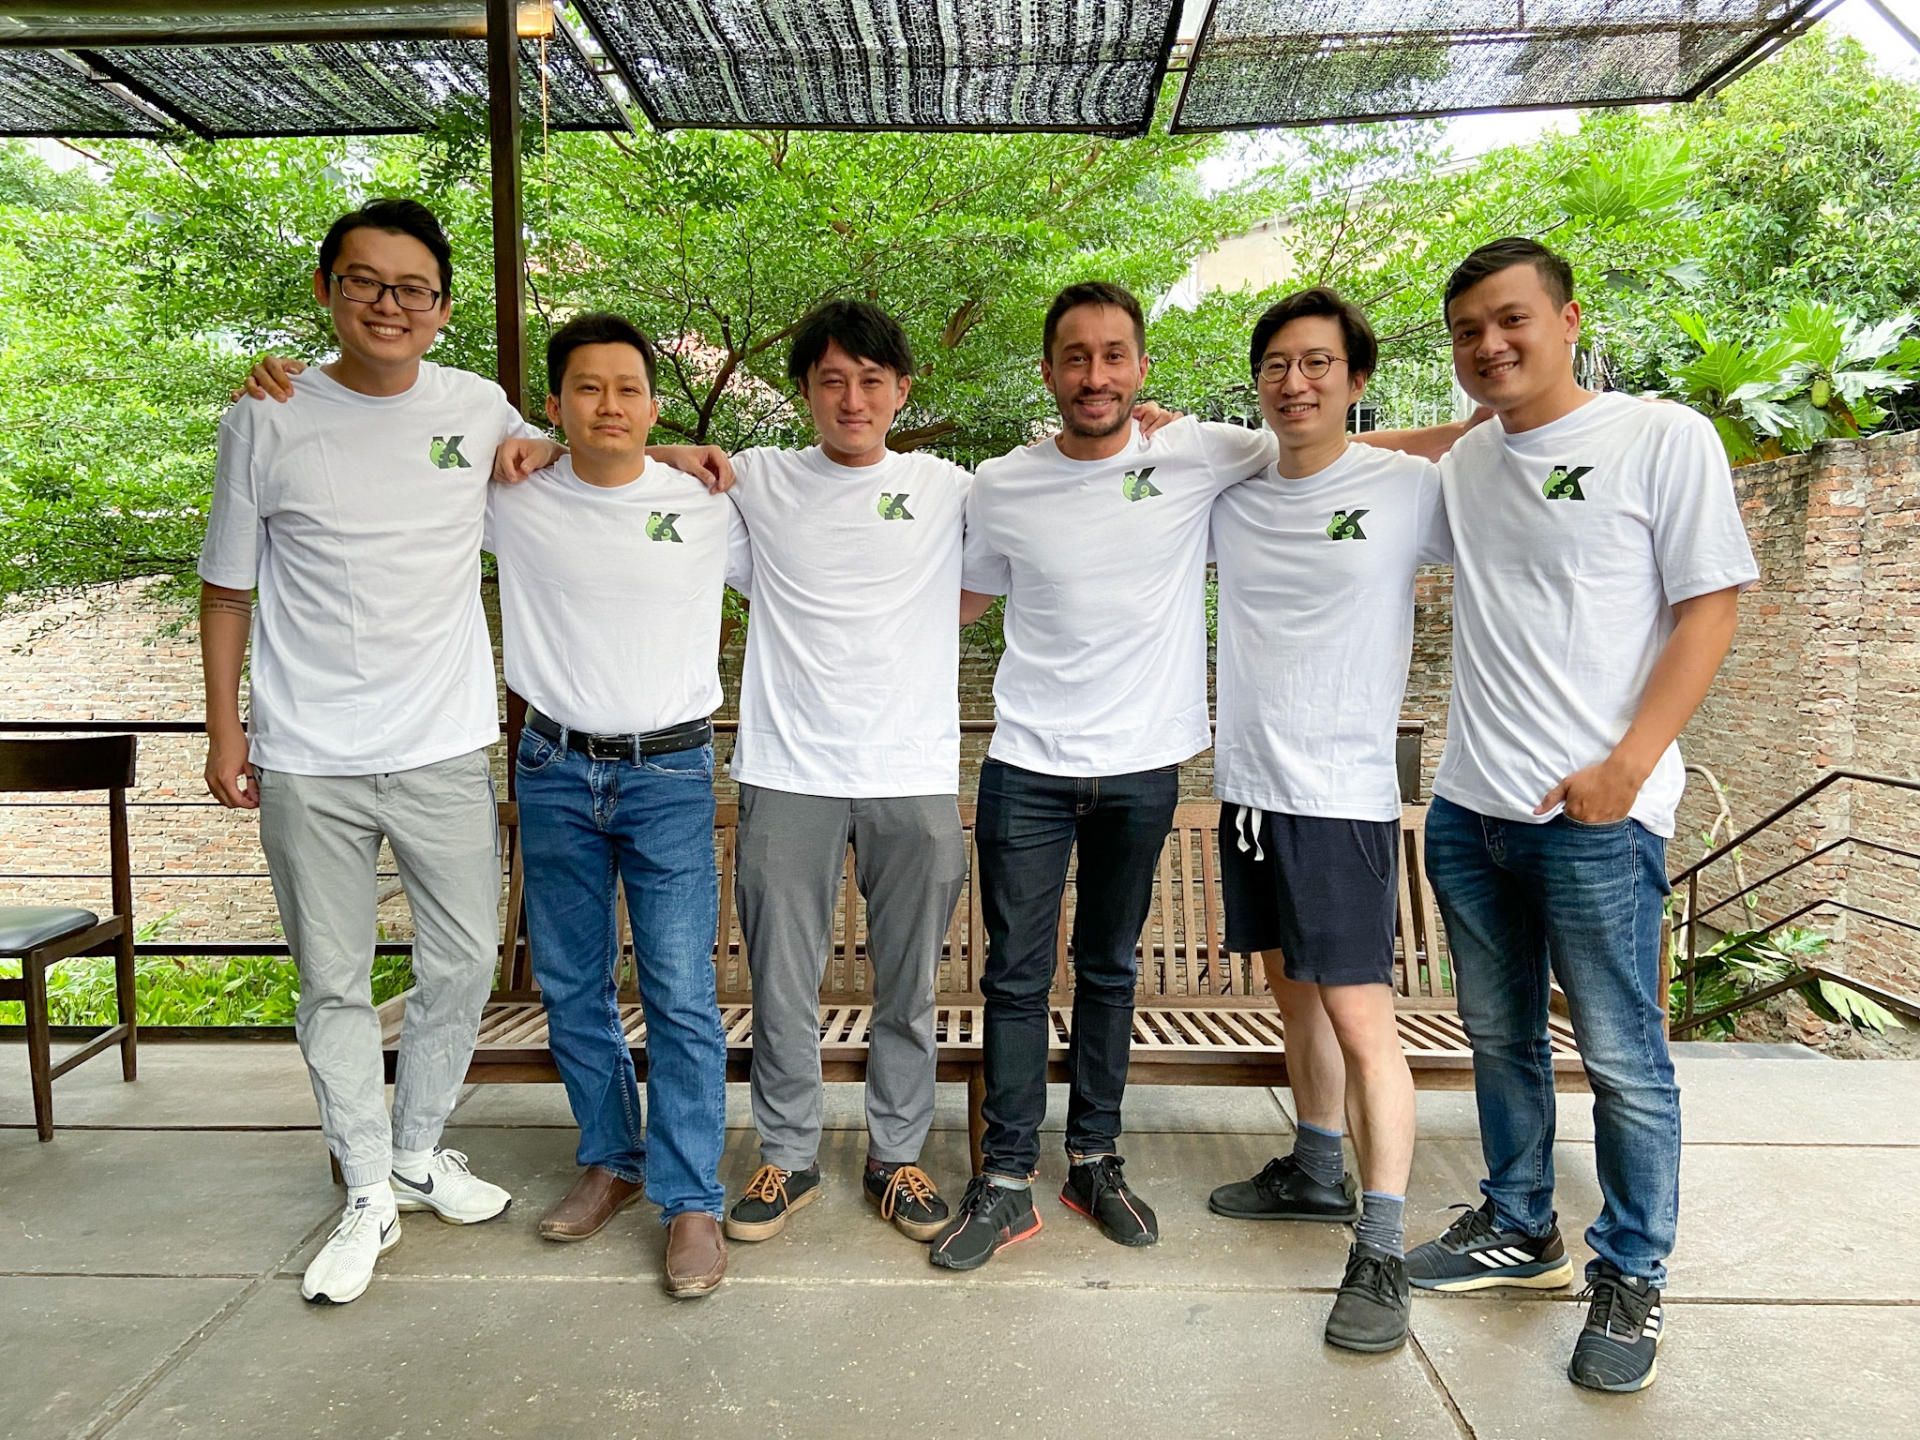 Kamereo secures $4.6 million to expand food supply chains in Vietnam